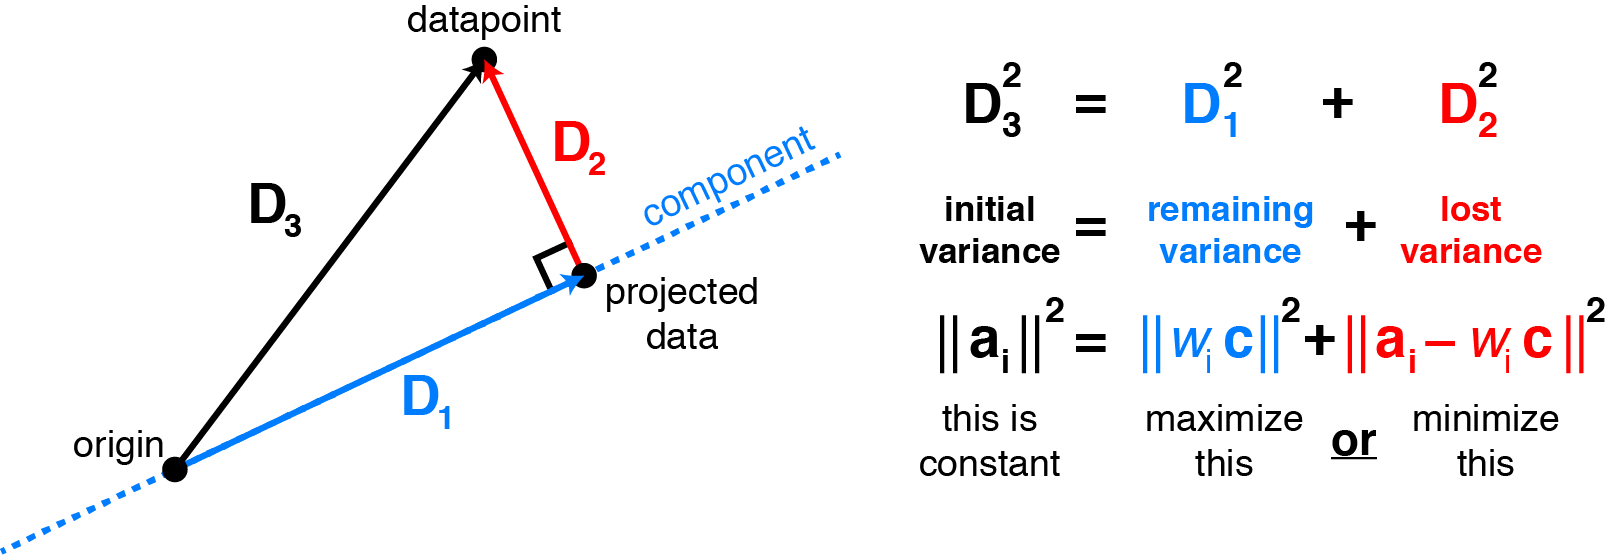 Consider a datapoint $\mathbf{a}_i$ (row $i$ of the data matrix $A$). Assuming the data are mean-centered, the projection of $\mathbf{a}_i$ onto the principal components relates the remaining variance to the squared residual by the Pythagorean theorem. Choosing the components to maximize variance is the same as choosing them to minimize the squared residuals.